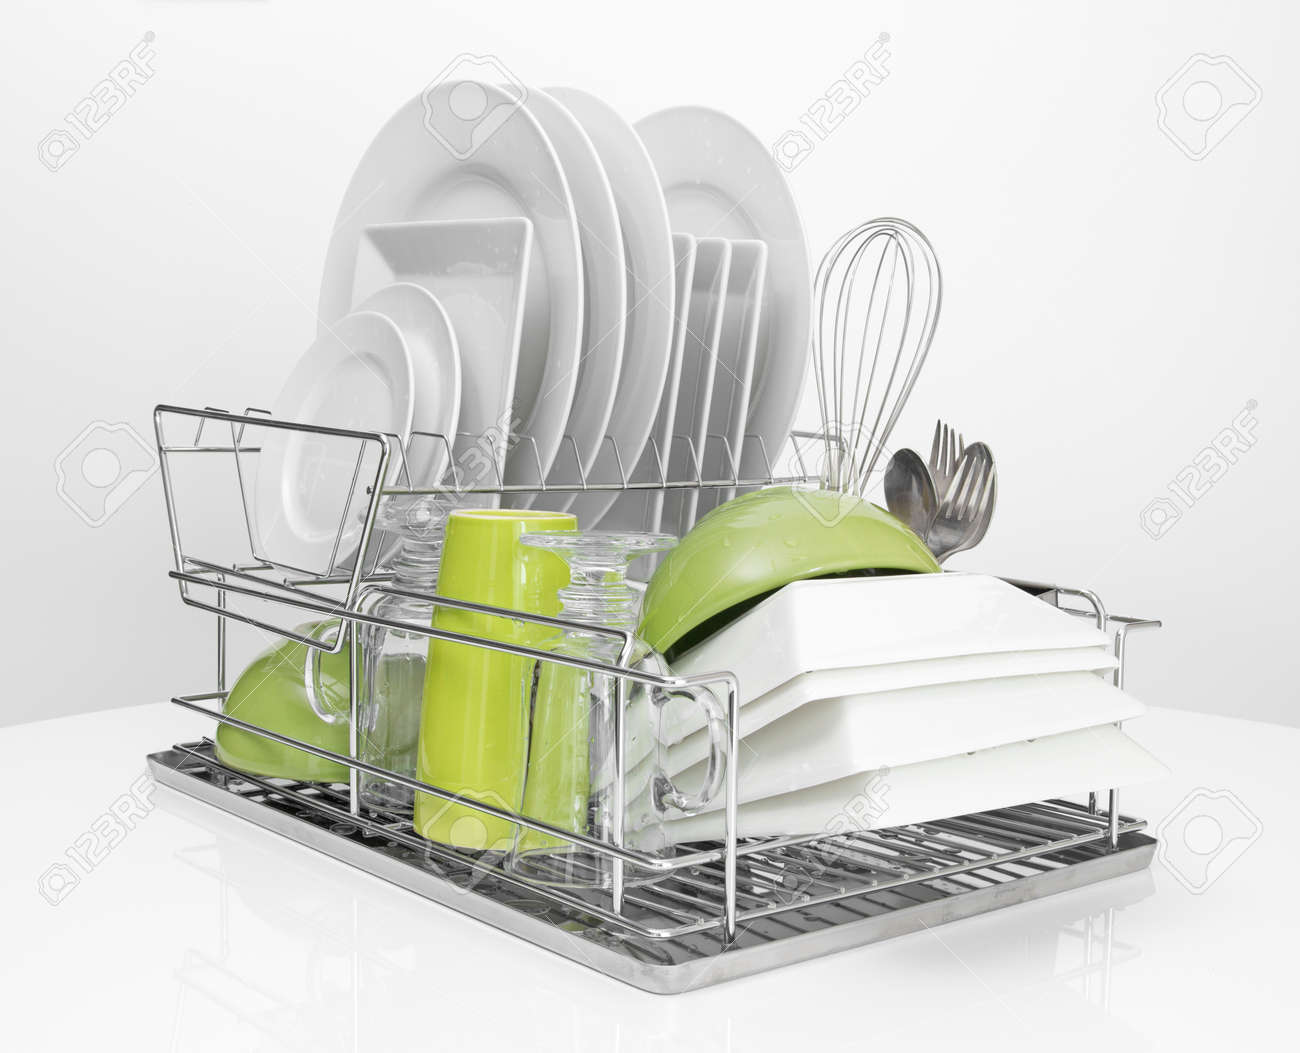 kitchen drying rack dish soap dispenser bright dishes on a metal white background stock photo 16674106